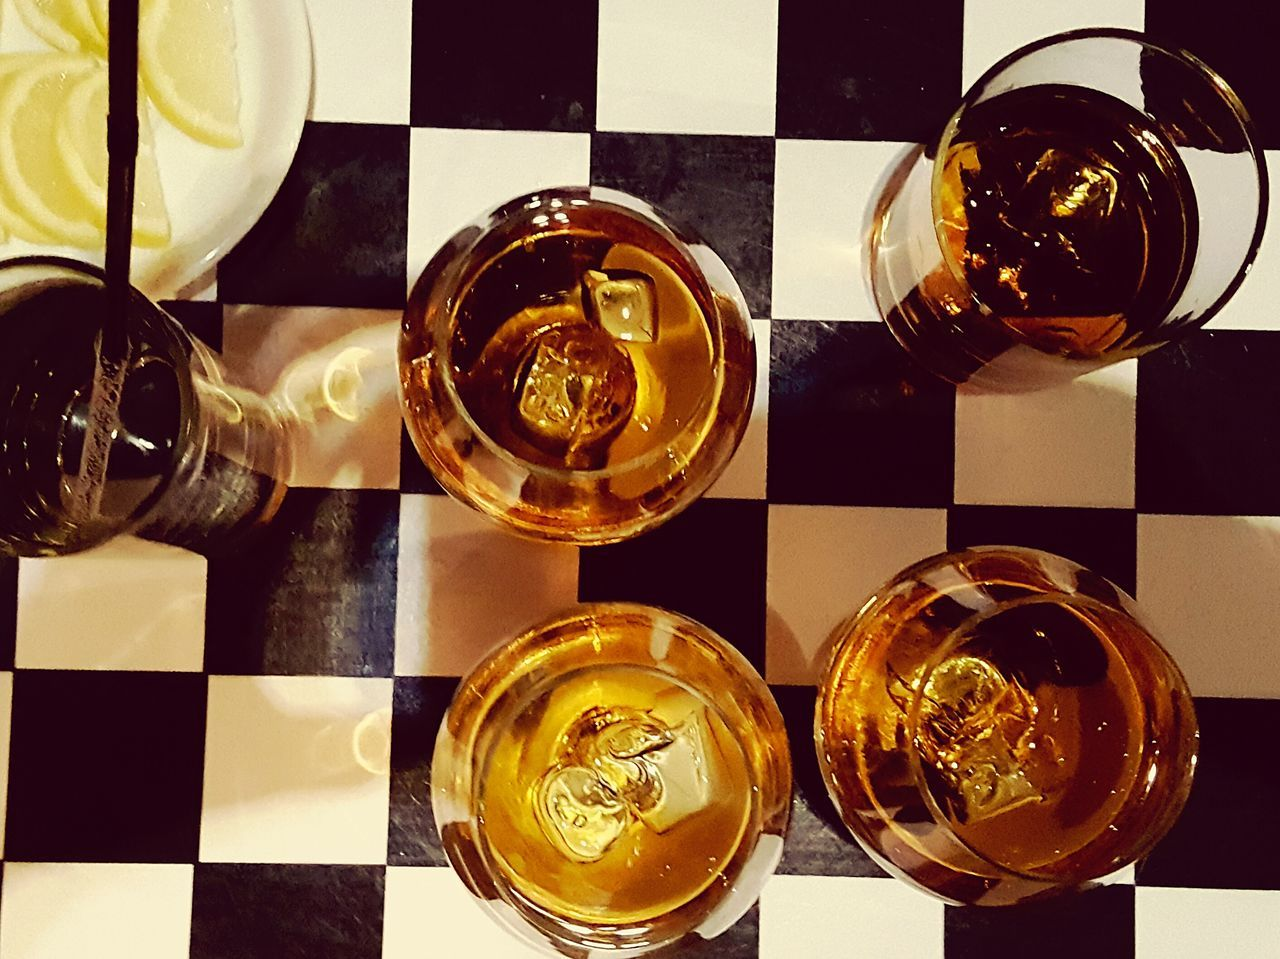 Cognac Drinks Drinking Drinks! Drinks With Friends Drink Drank Drunk Party Time SCHACHMATT Chess Chessboard Cognac&vodka One Bottle Relax Chillout Chilling ✌